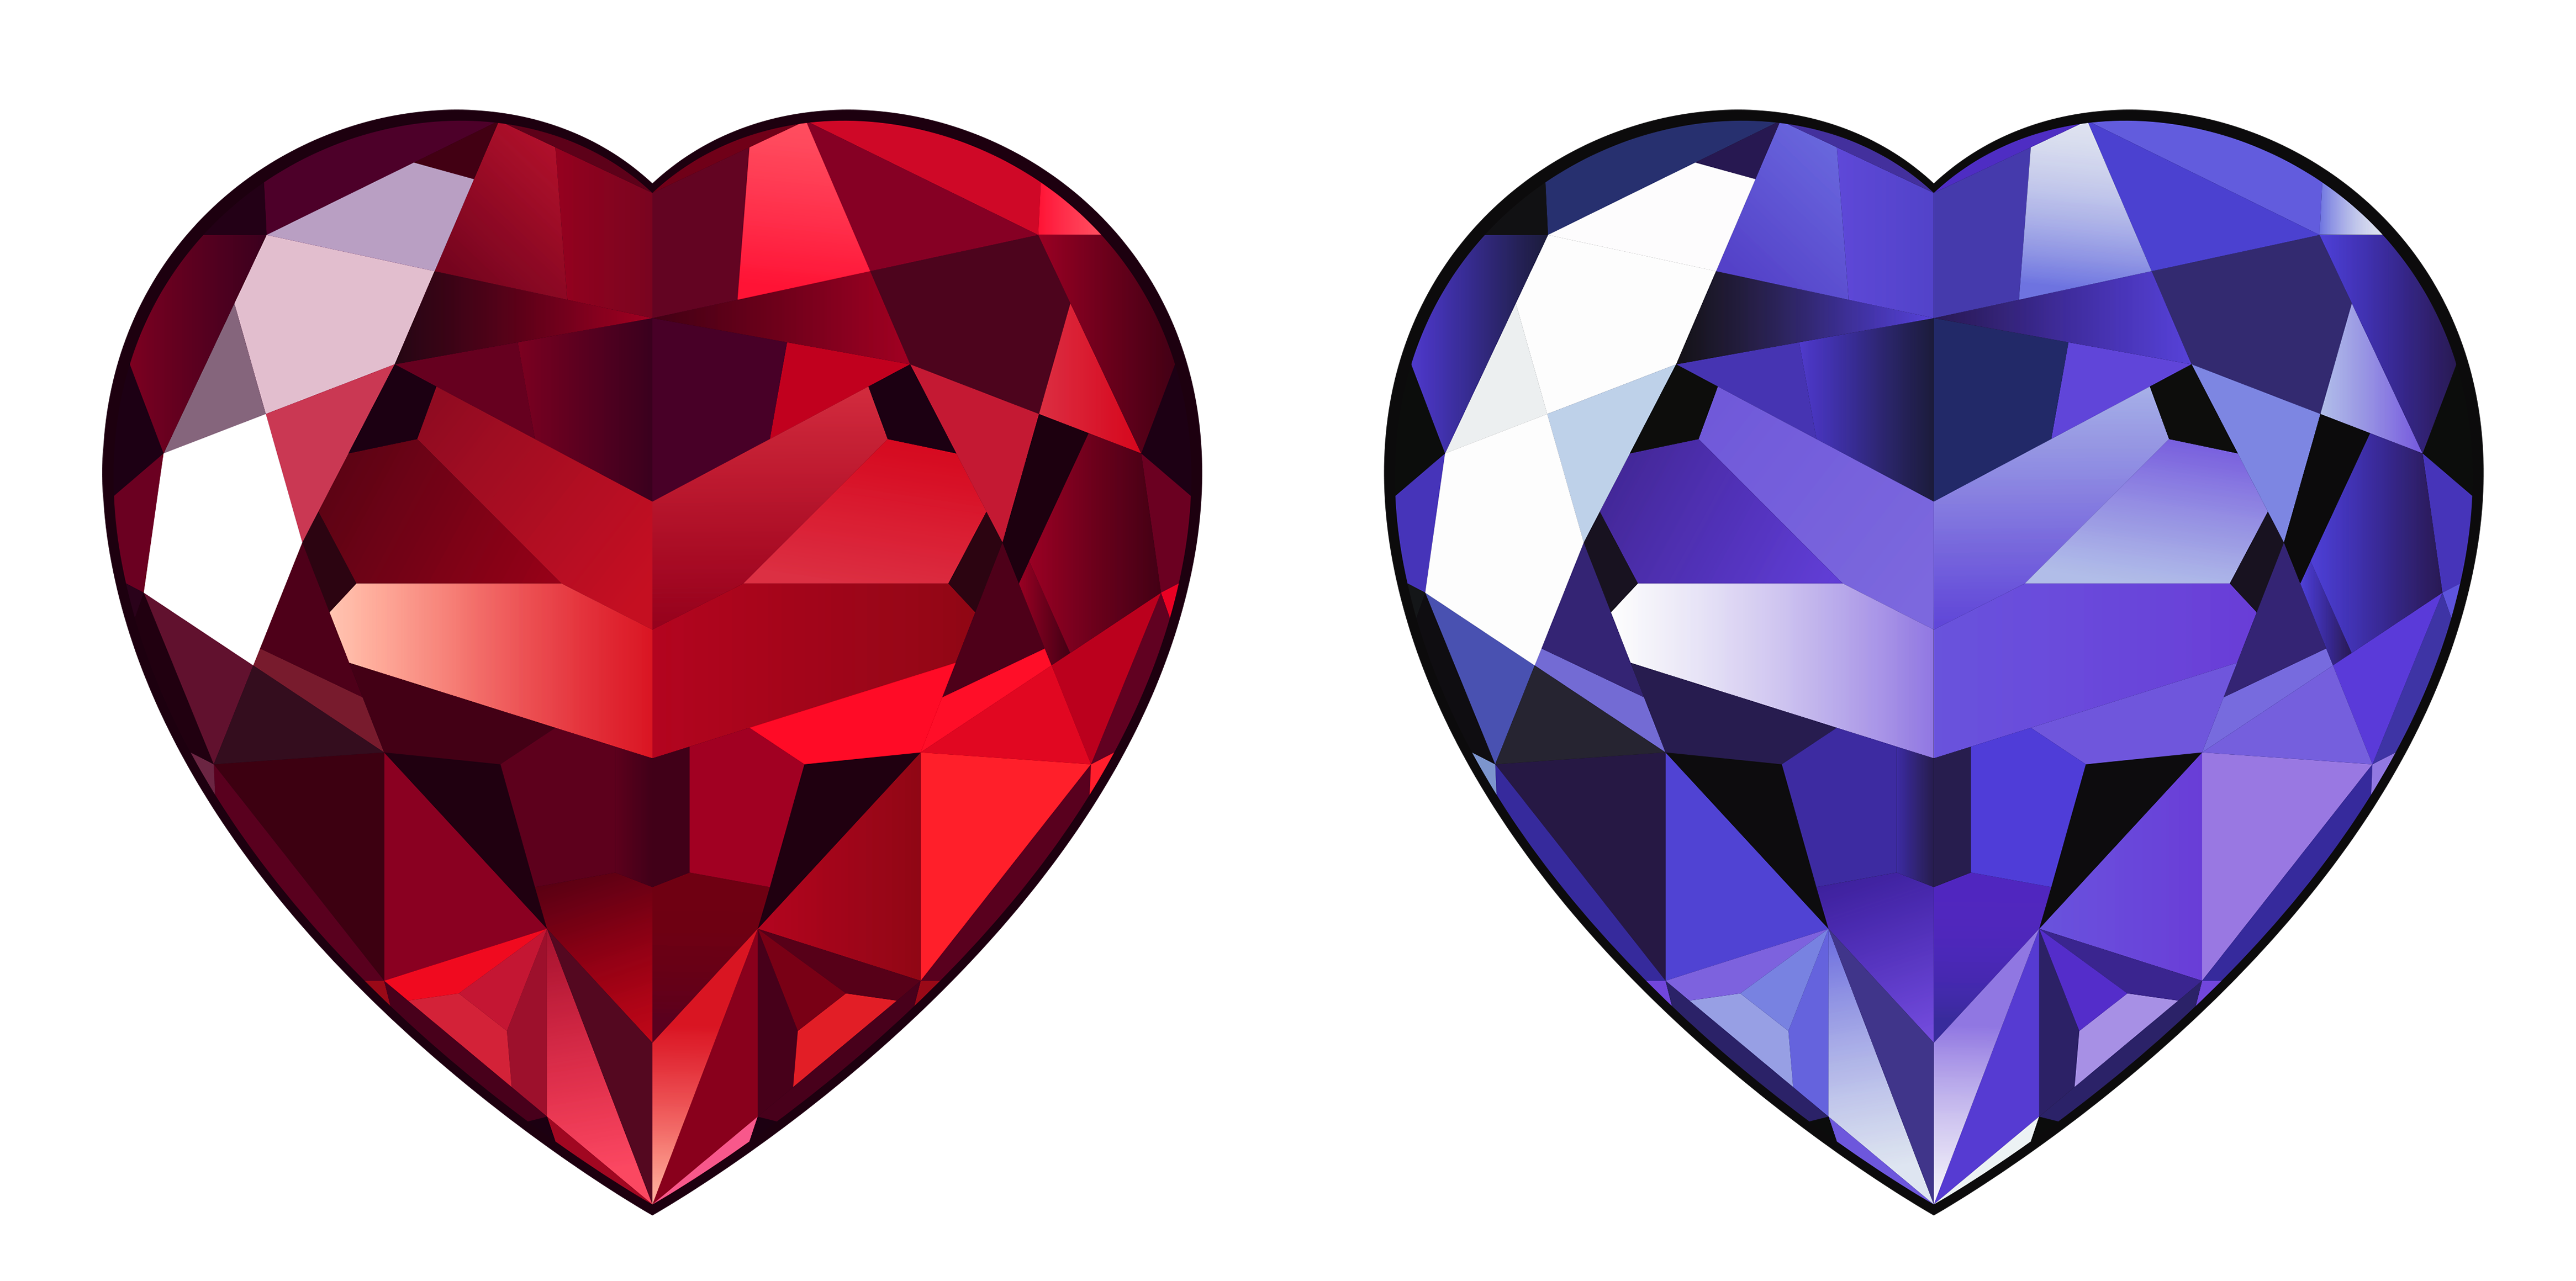 Diamond free vector download 609 Free vector for